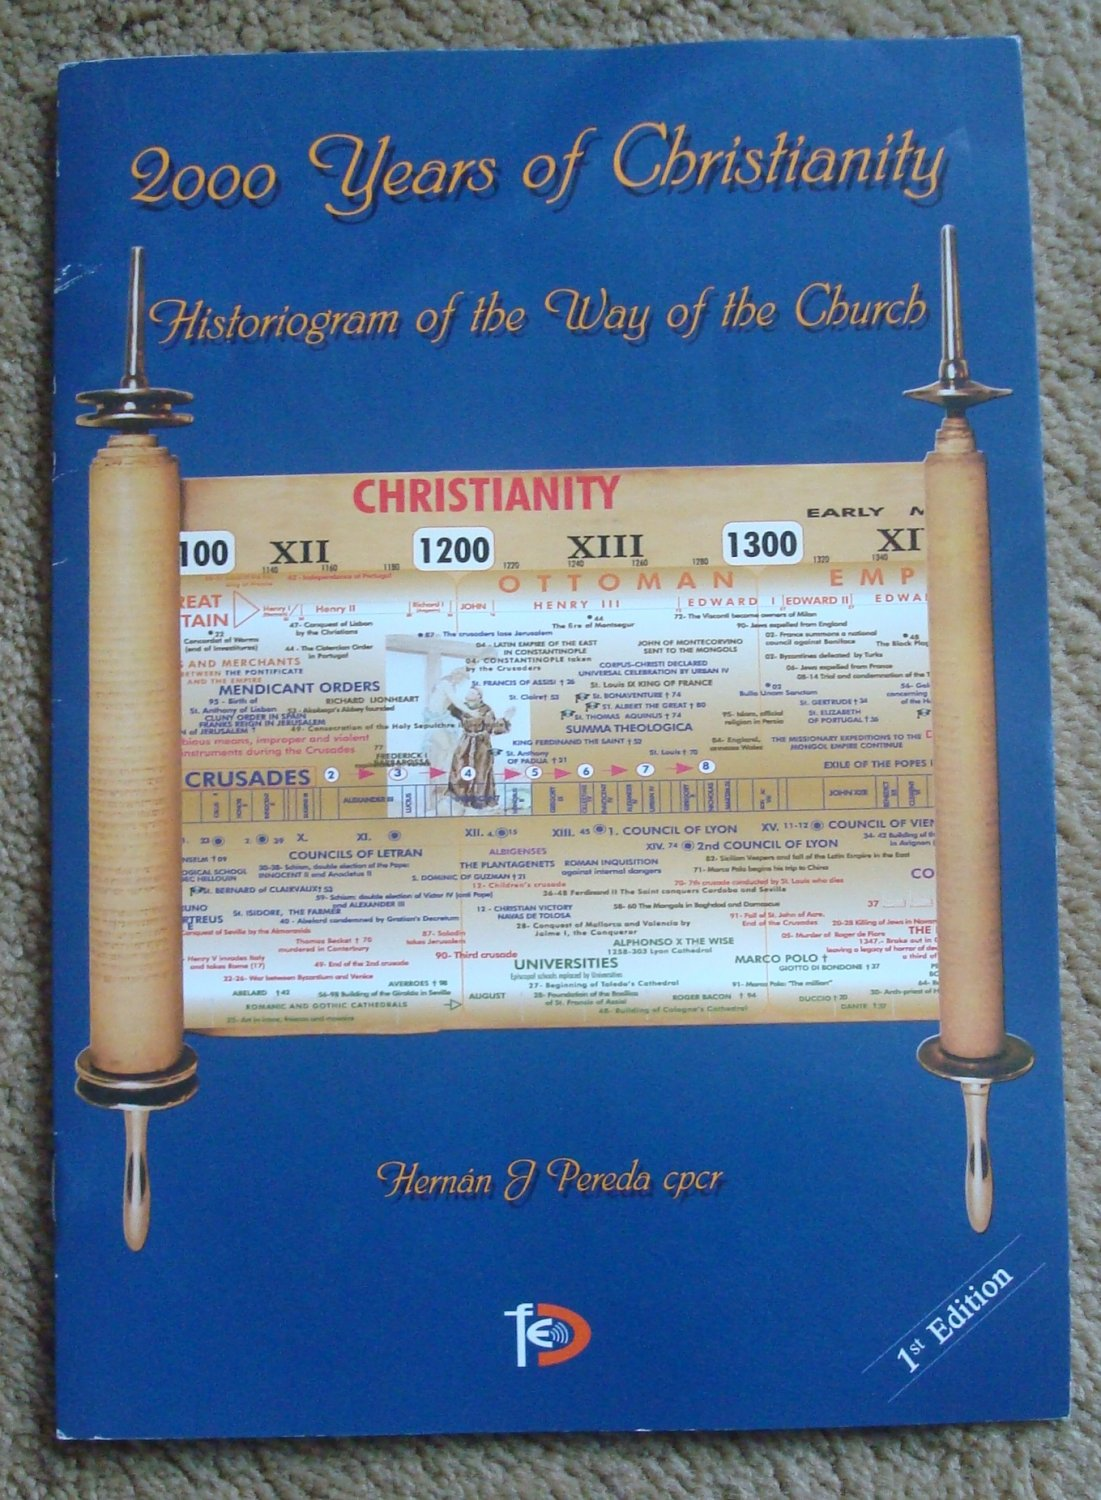 2000 Years of Christianity: Historiogram of the Way of the Church